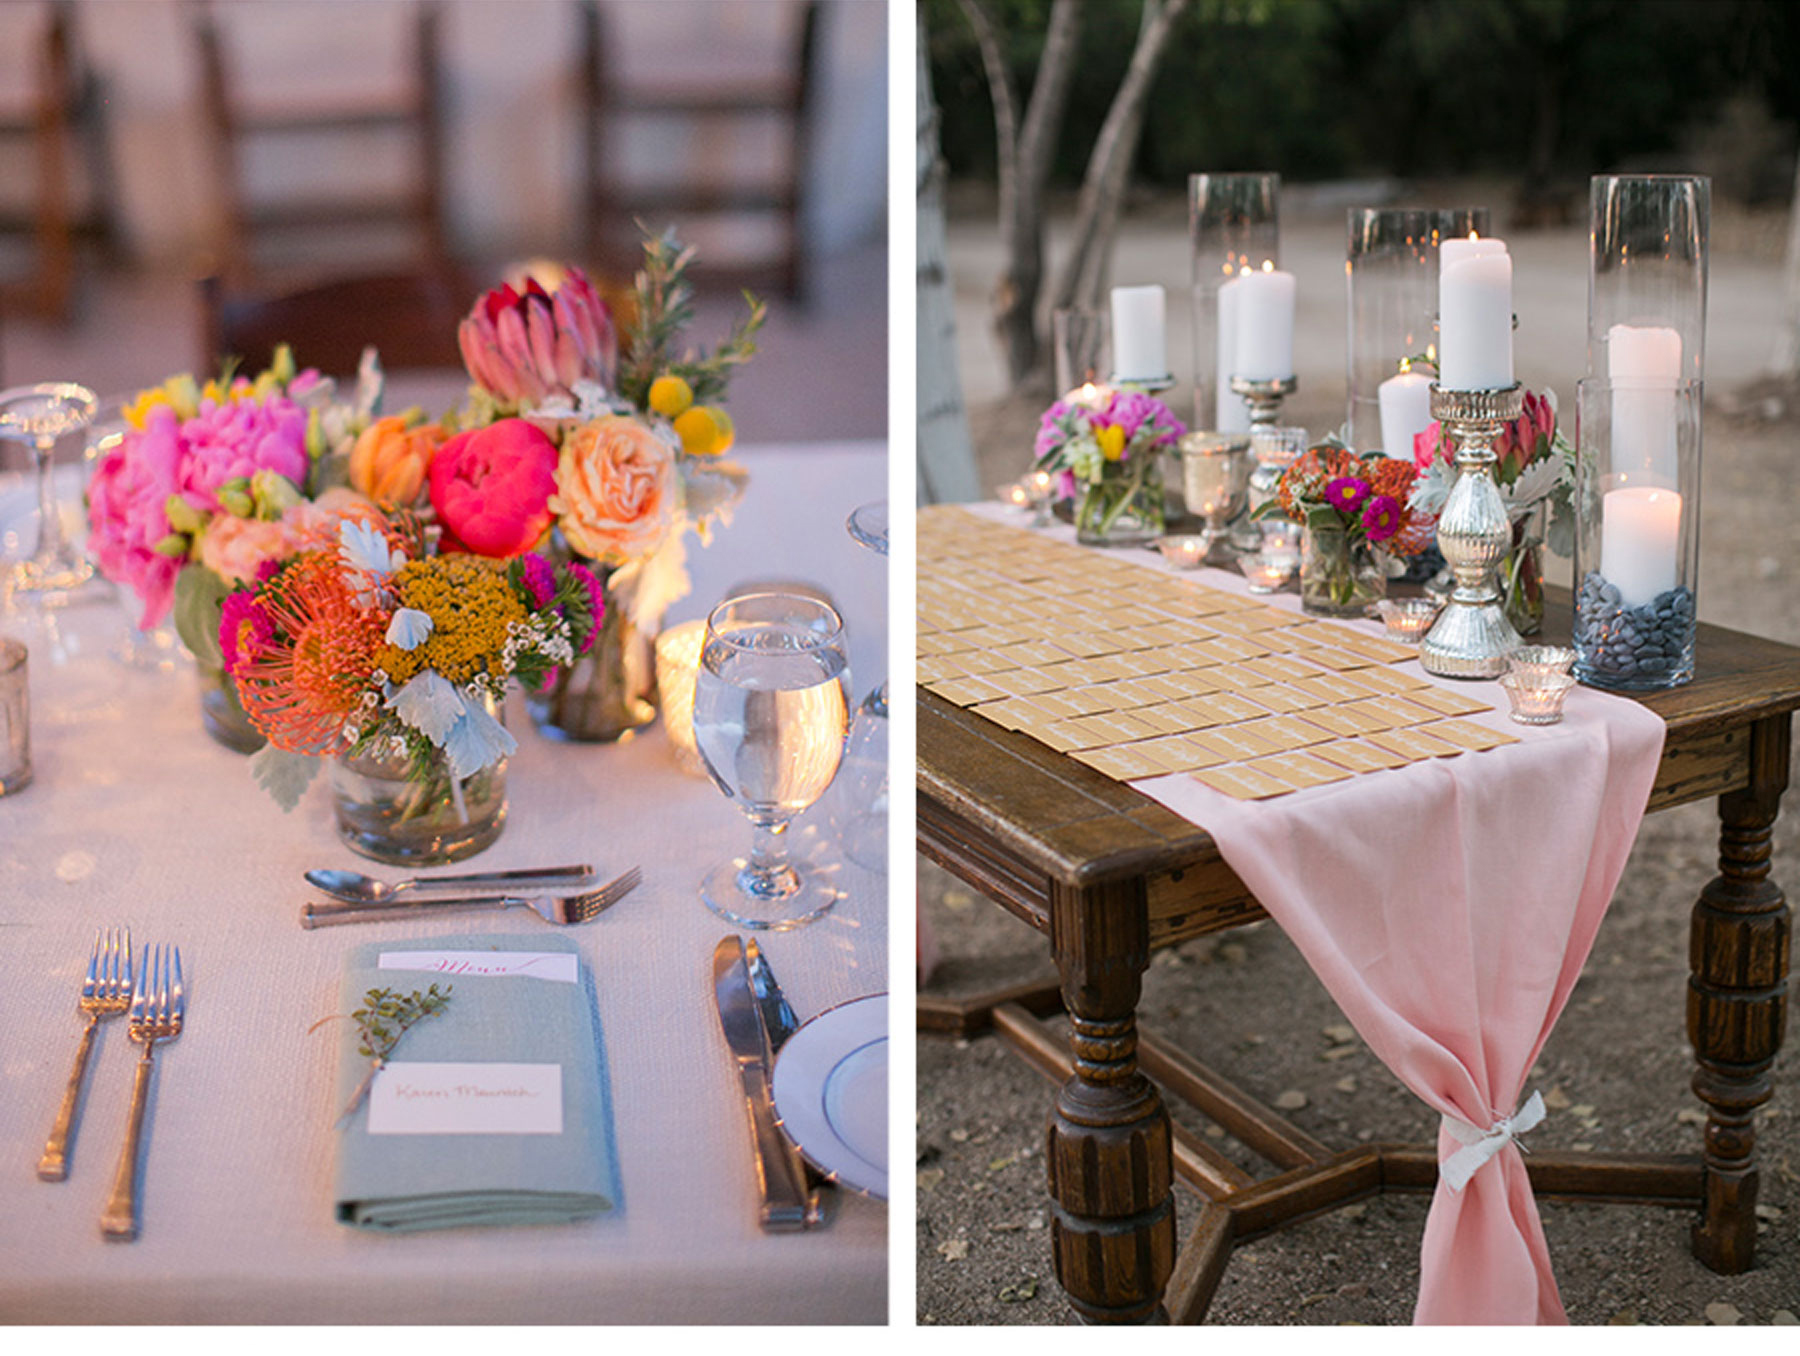 Our Muse - Dreamy Desert Wedding - Be inspired by Anja and Ben's eclectic desert wedding in Tucson, Arizona - wedding, tuscon, arizona, the knot, mel barlow, allan zepeda, clark + walker studio, tanque verde ranch, pro em creative services, laura wright events, rock paper scissors events, lafleur plantscapes, ana parzych custom cakes, the flashdance, mariachi luz de luna, hair by megan mikita, tim wilkins beauty, melissa sweet, urban outfitters, little borrowed dress, topman, bhldn